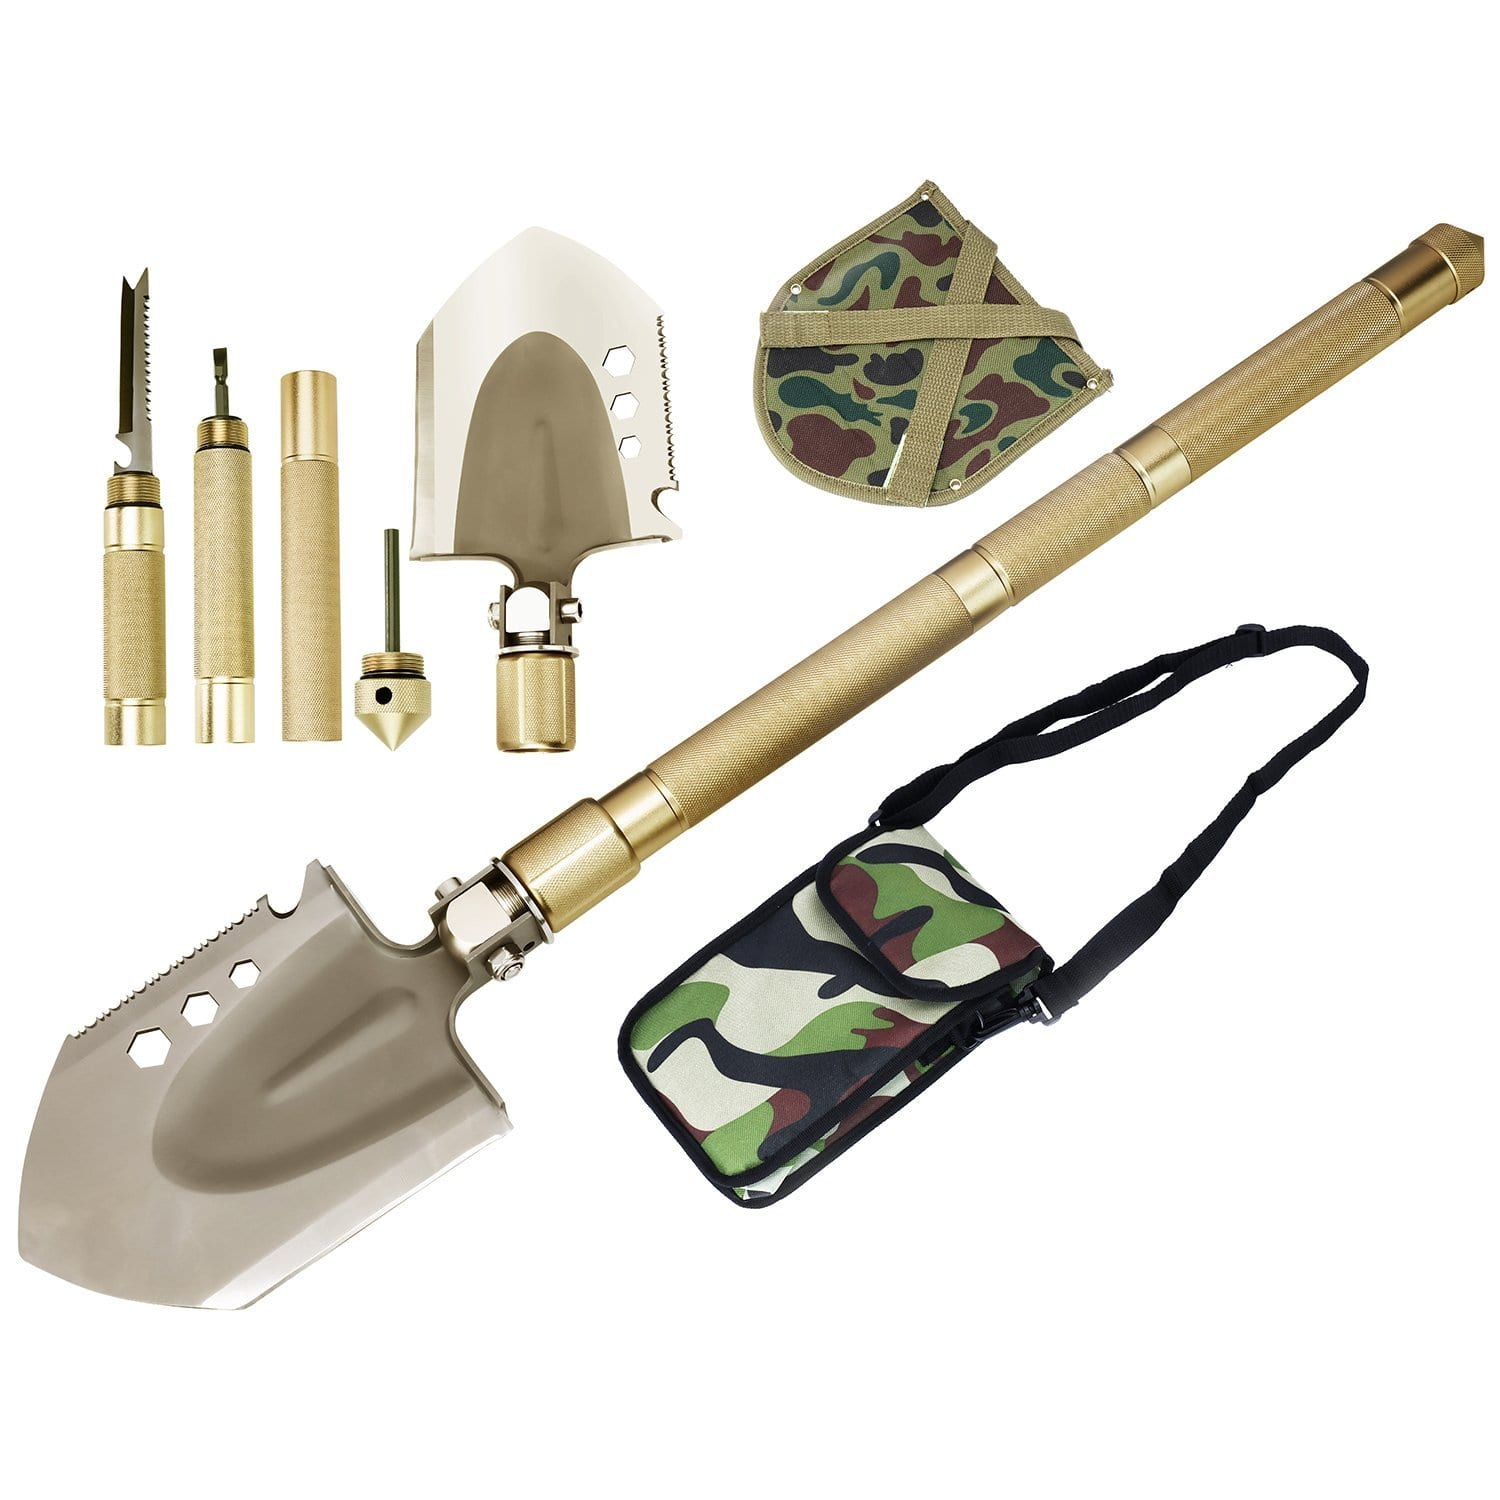 Rose Kuli Compact Folding Shovel Military Portable Shovel Outdoor Tactical Spade for Hiking, Camping, Hunting, Backpacking, Trench Entrenching Tool, Car Emergency - $26.96 @ Amazon